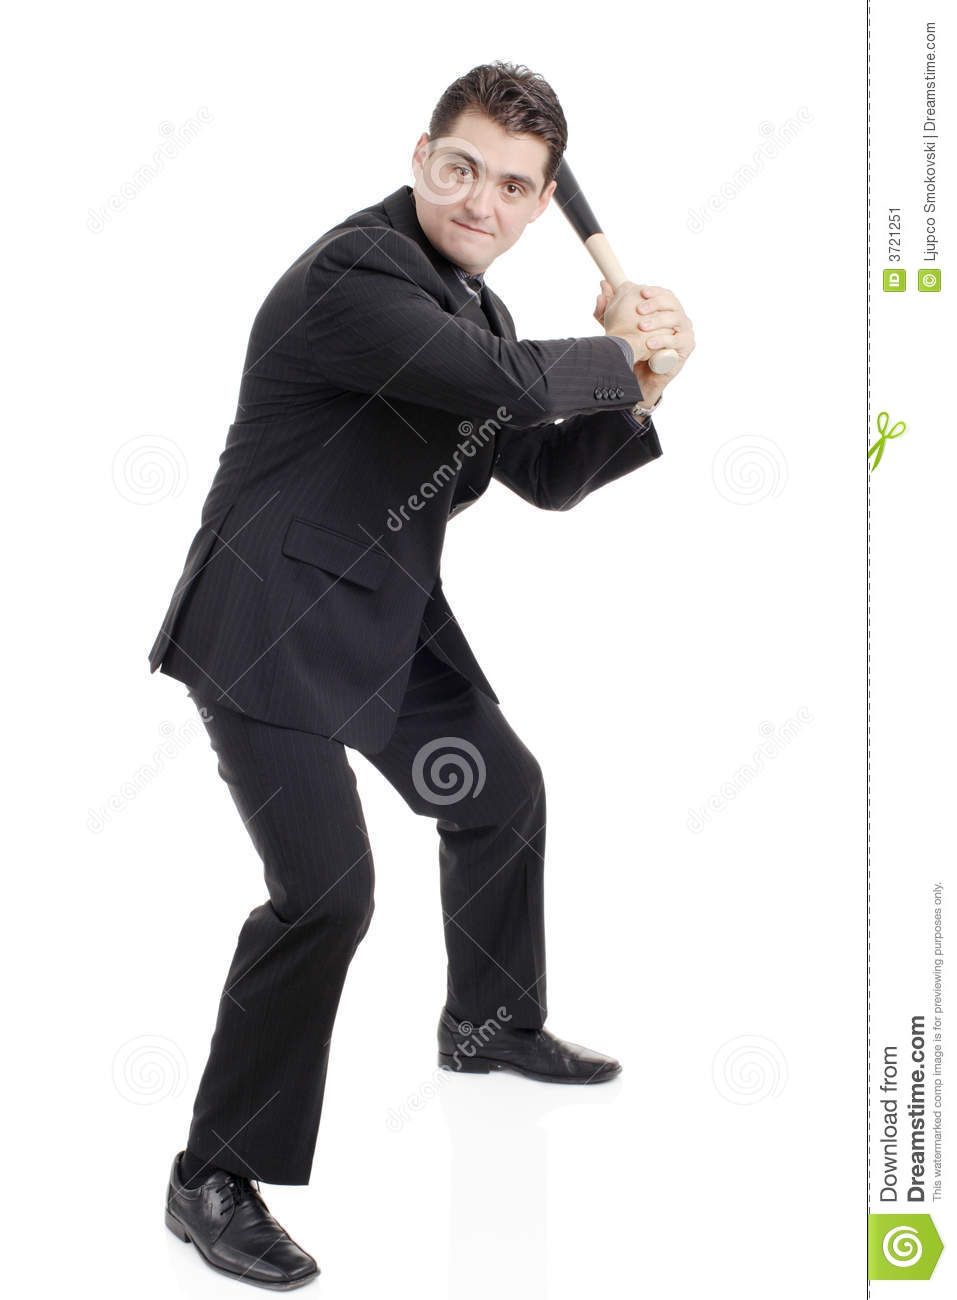 person with a baseball bat stock image  image of